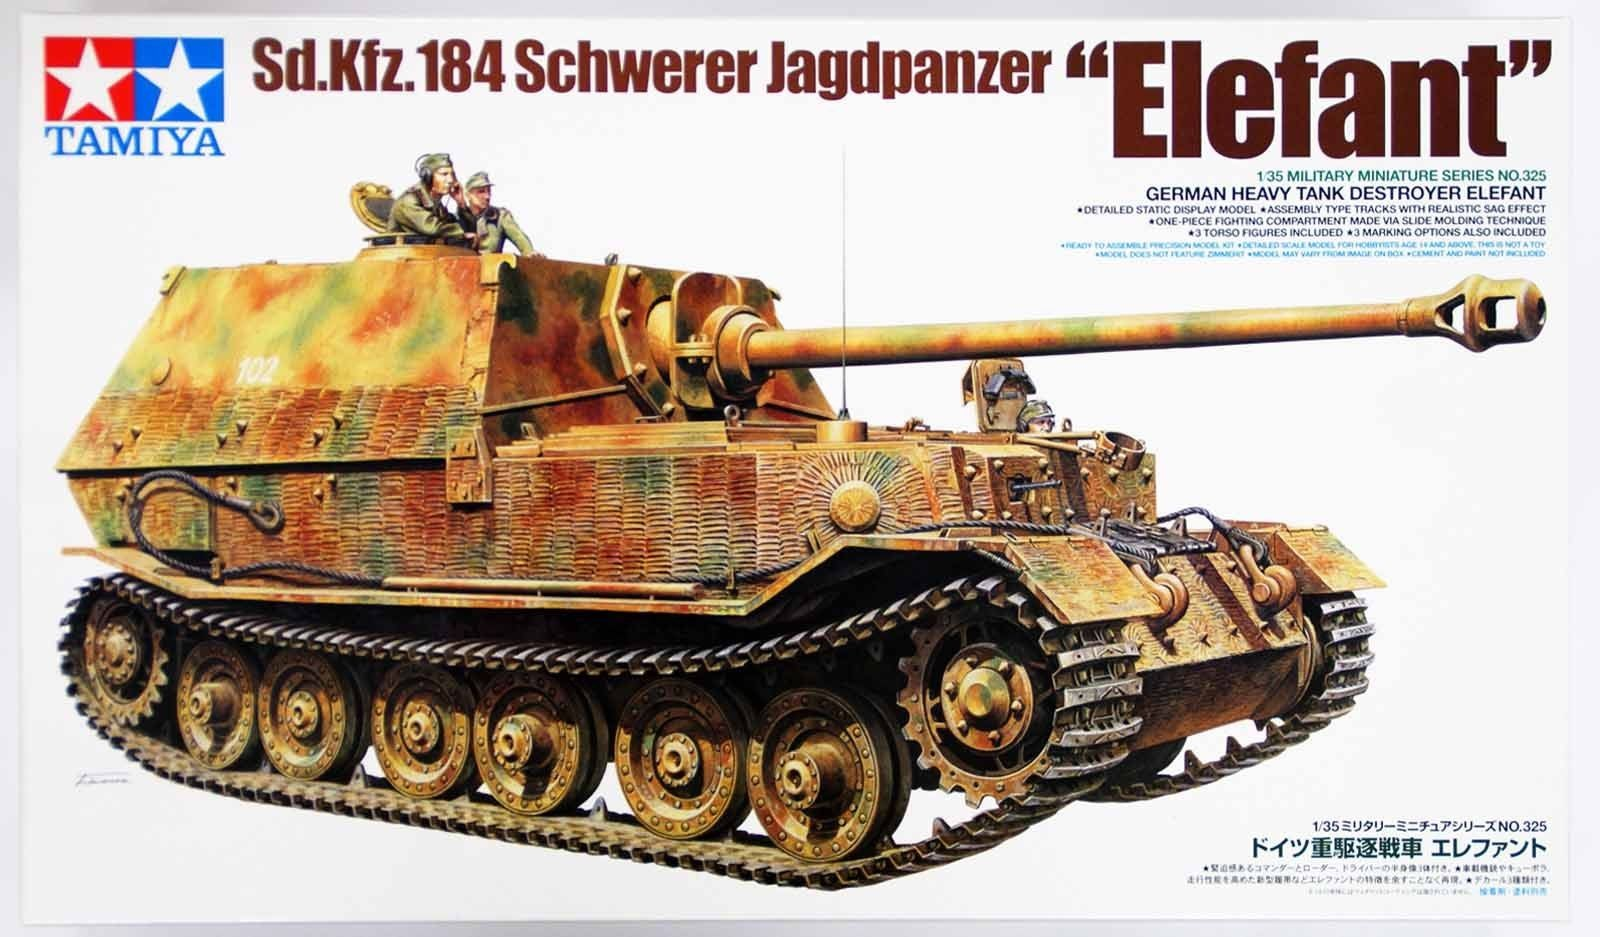 GermanTank Destroyer ''Elefant'' - Tamiya 35325 - plastic model kit - 1/35 scale